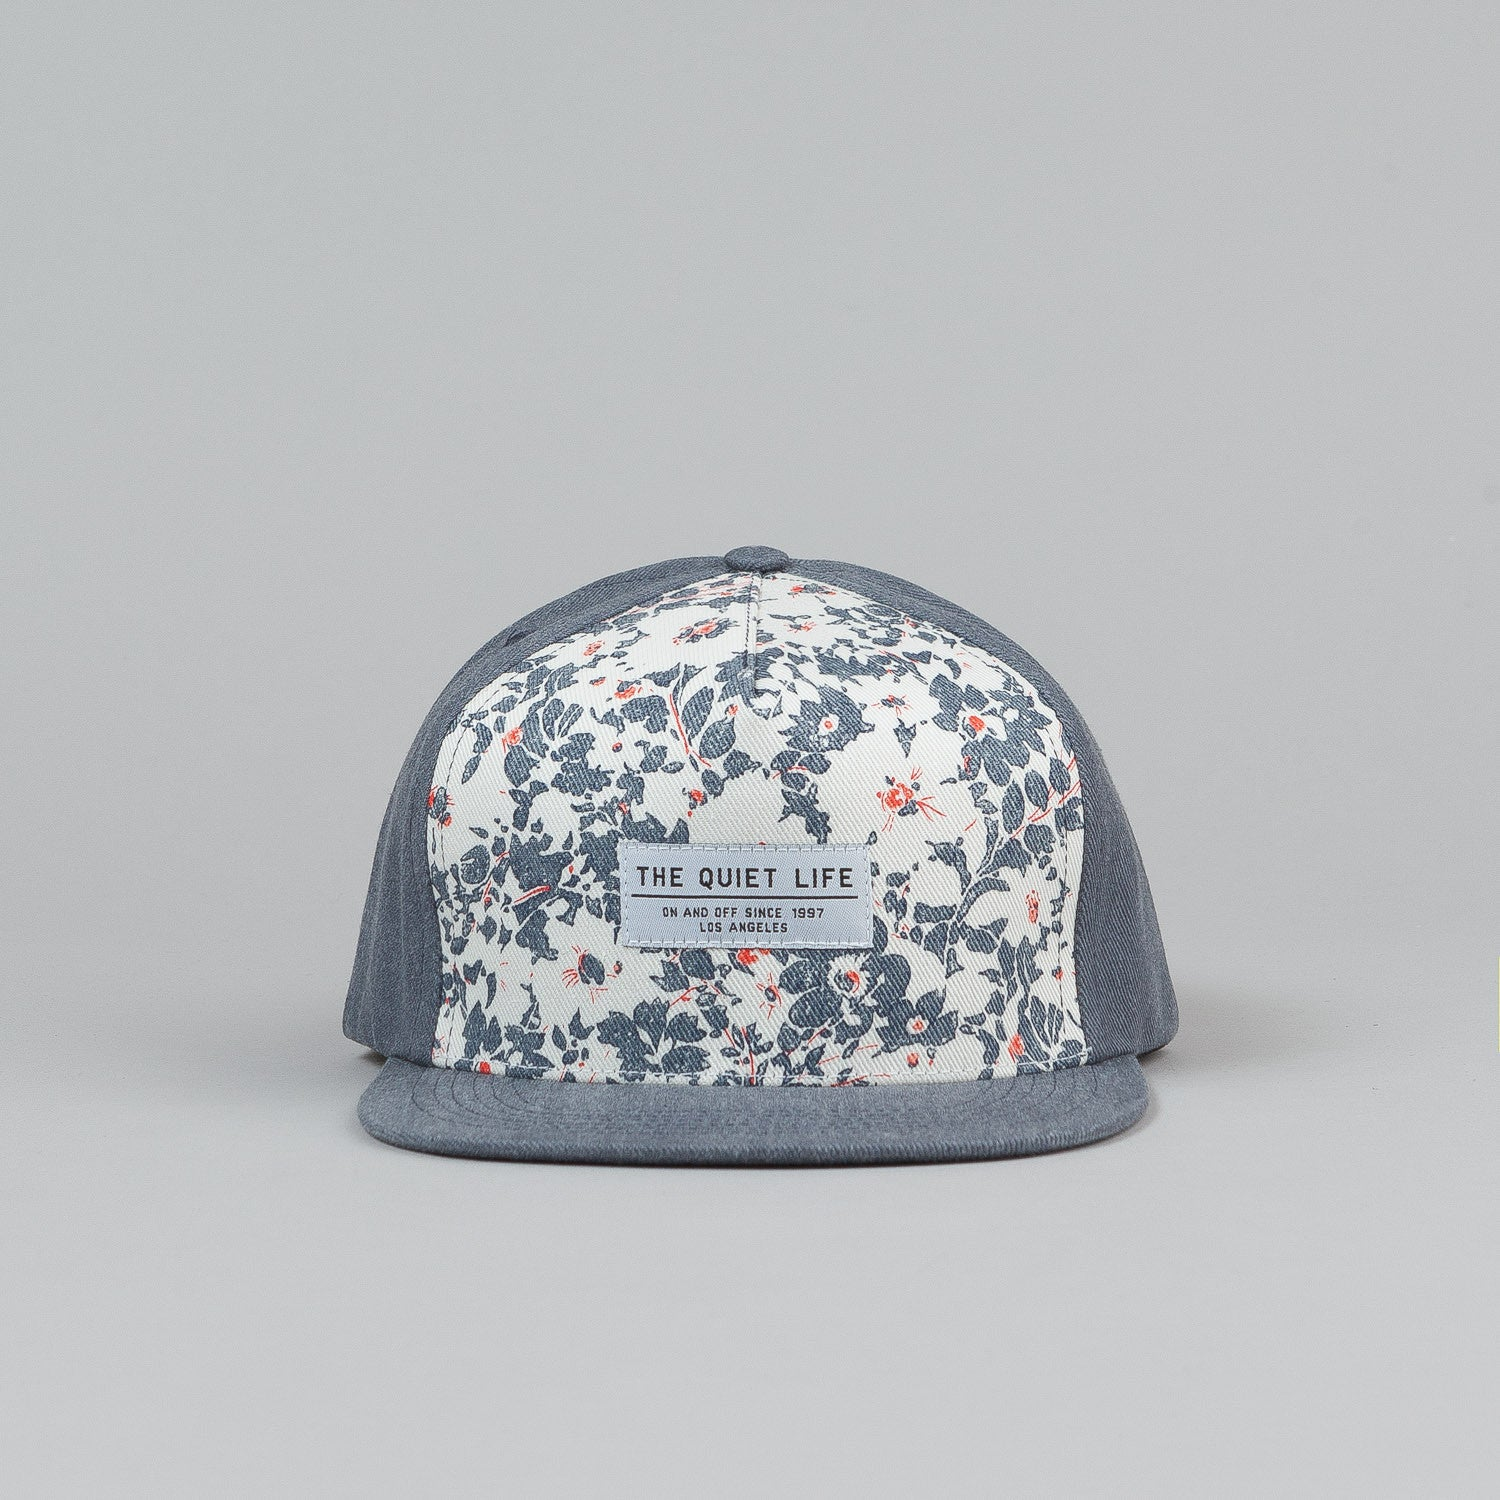 The Quiet Life Liberty Floral Snapback Cap - Floral